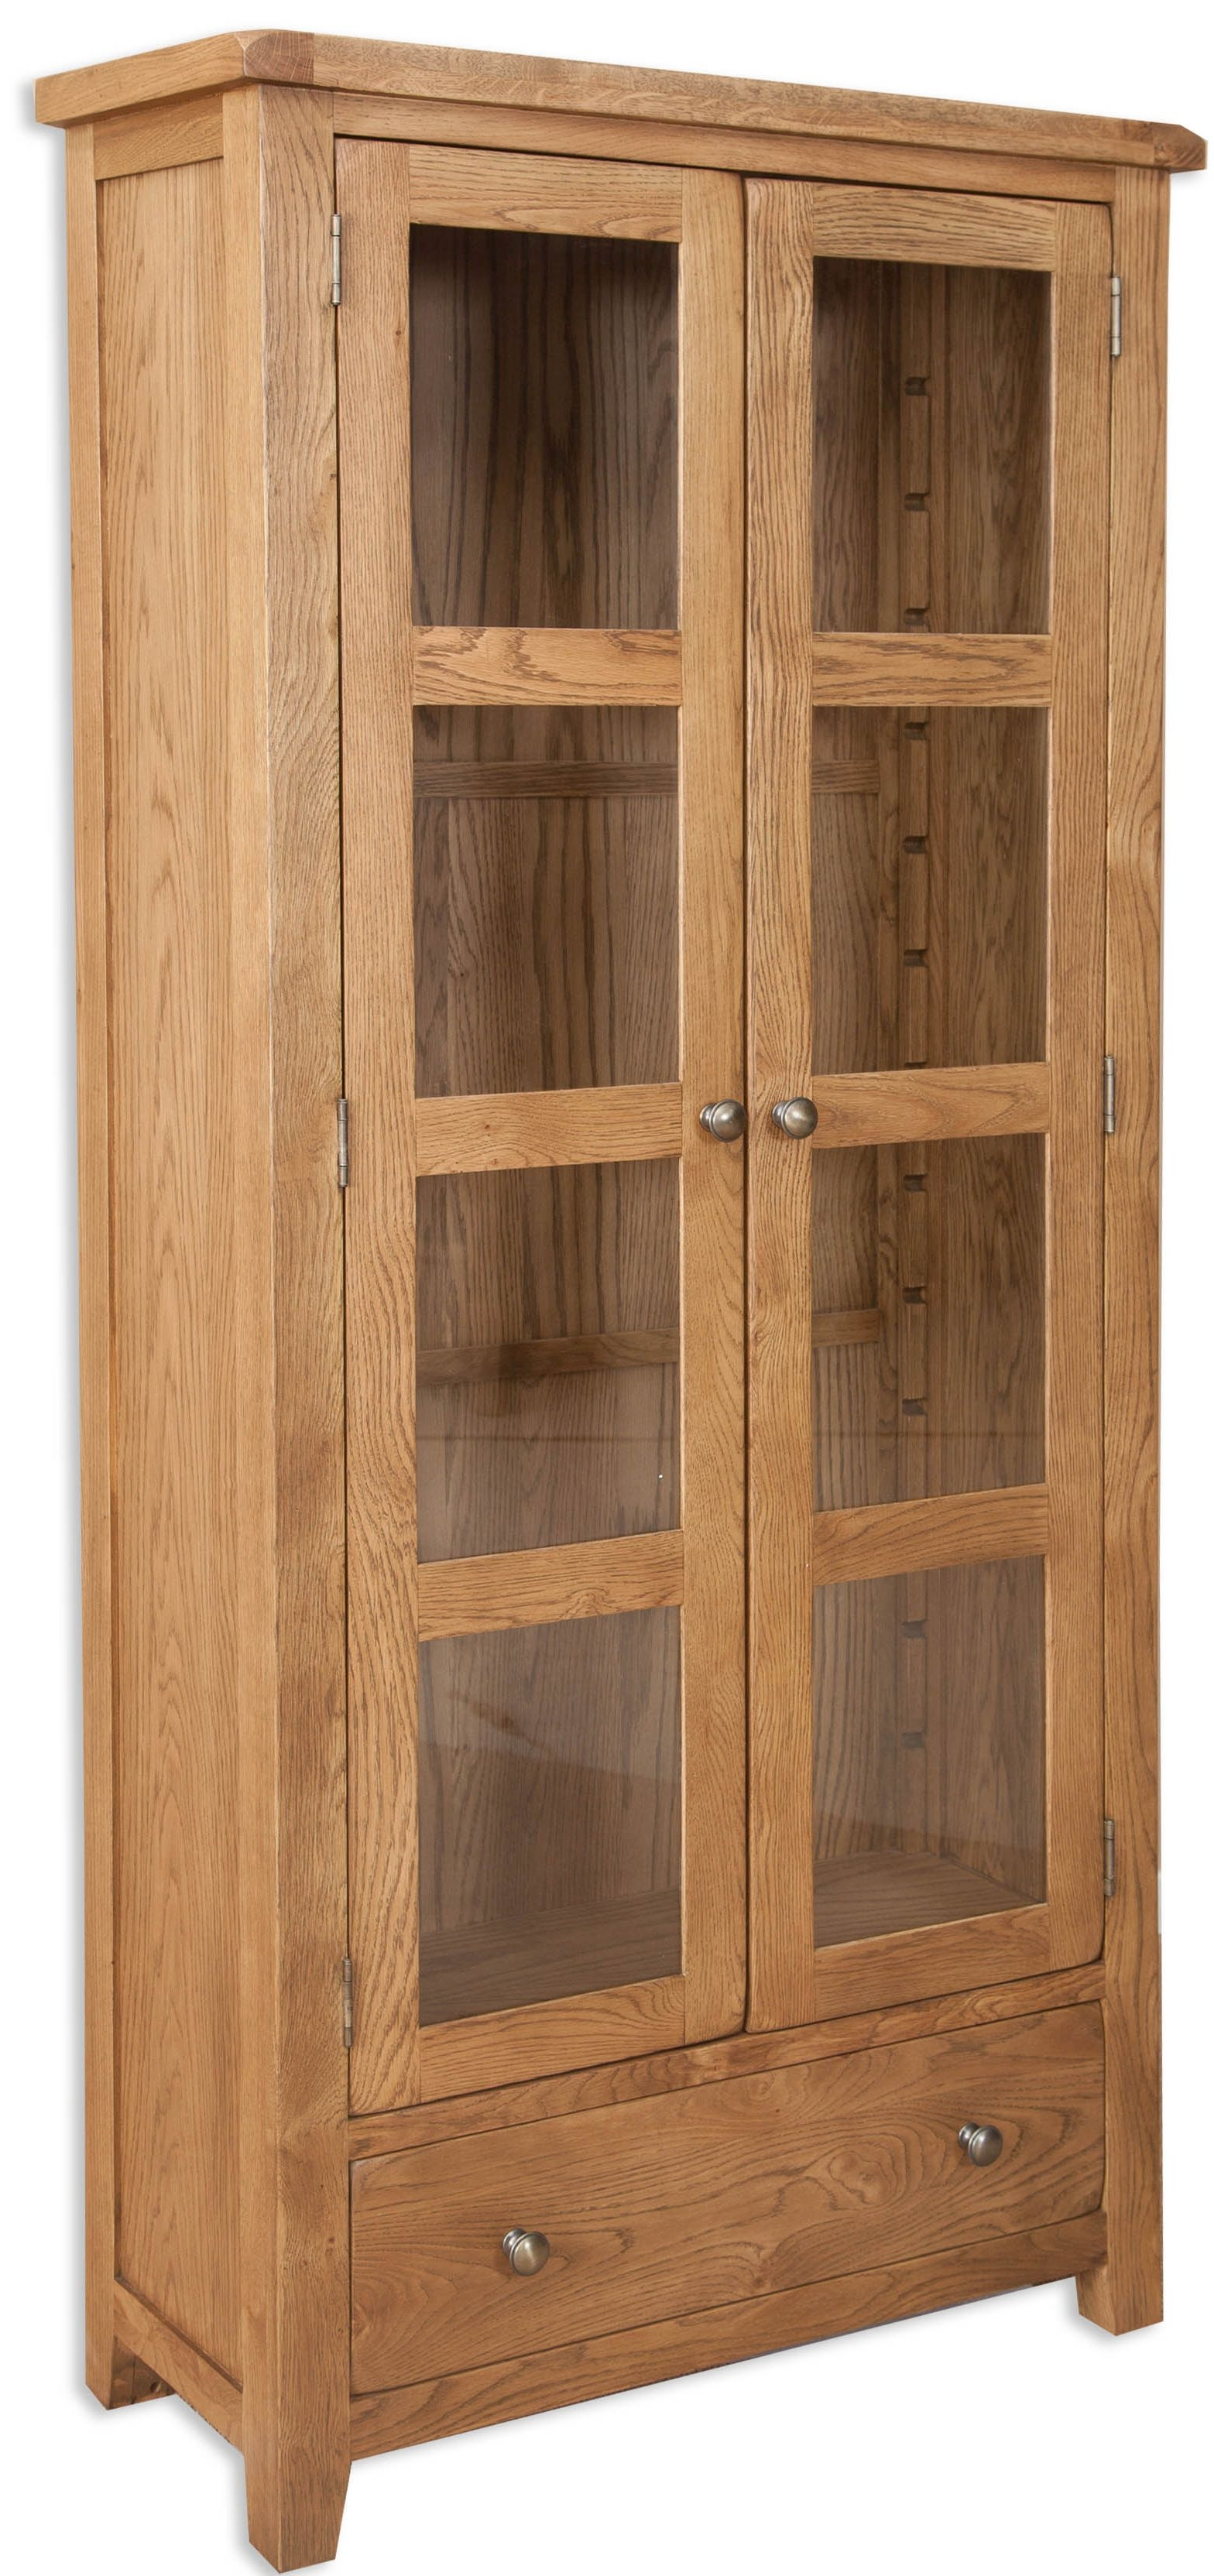 Buy Perth Country Oak Display Cabinet Online Cfs Uk